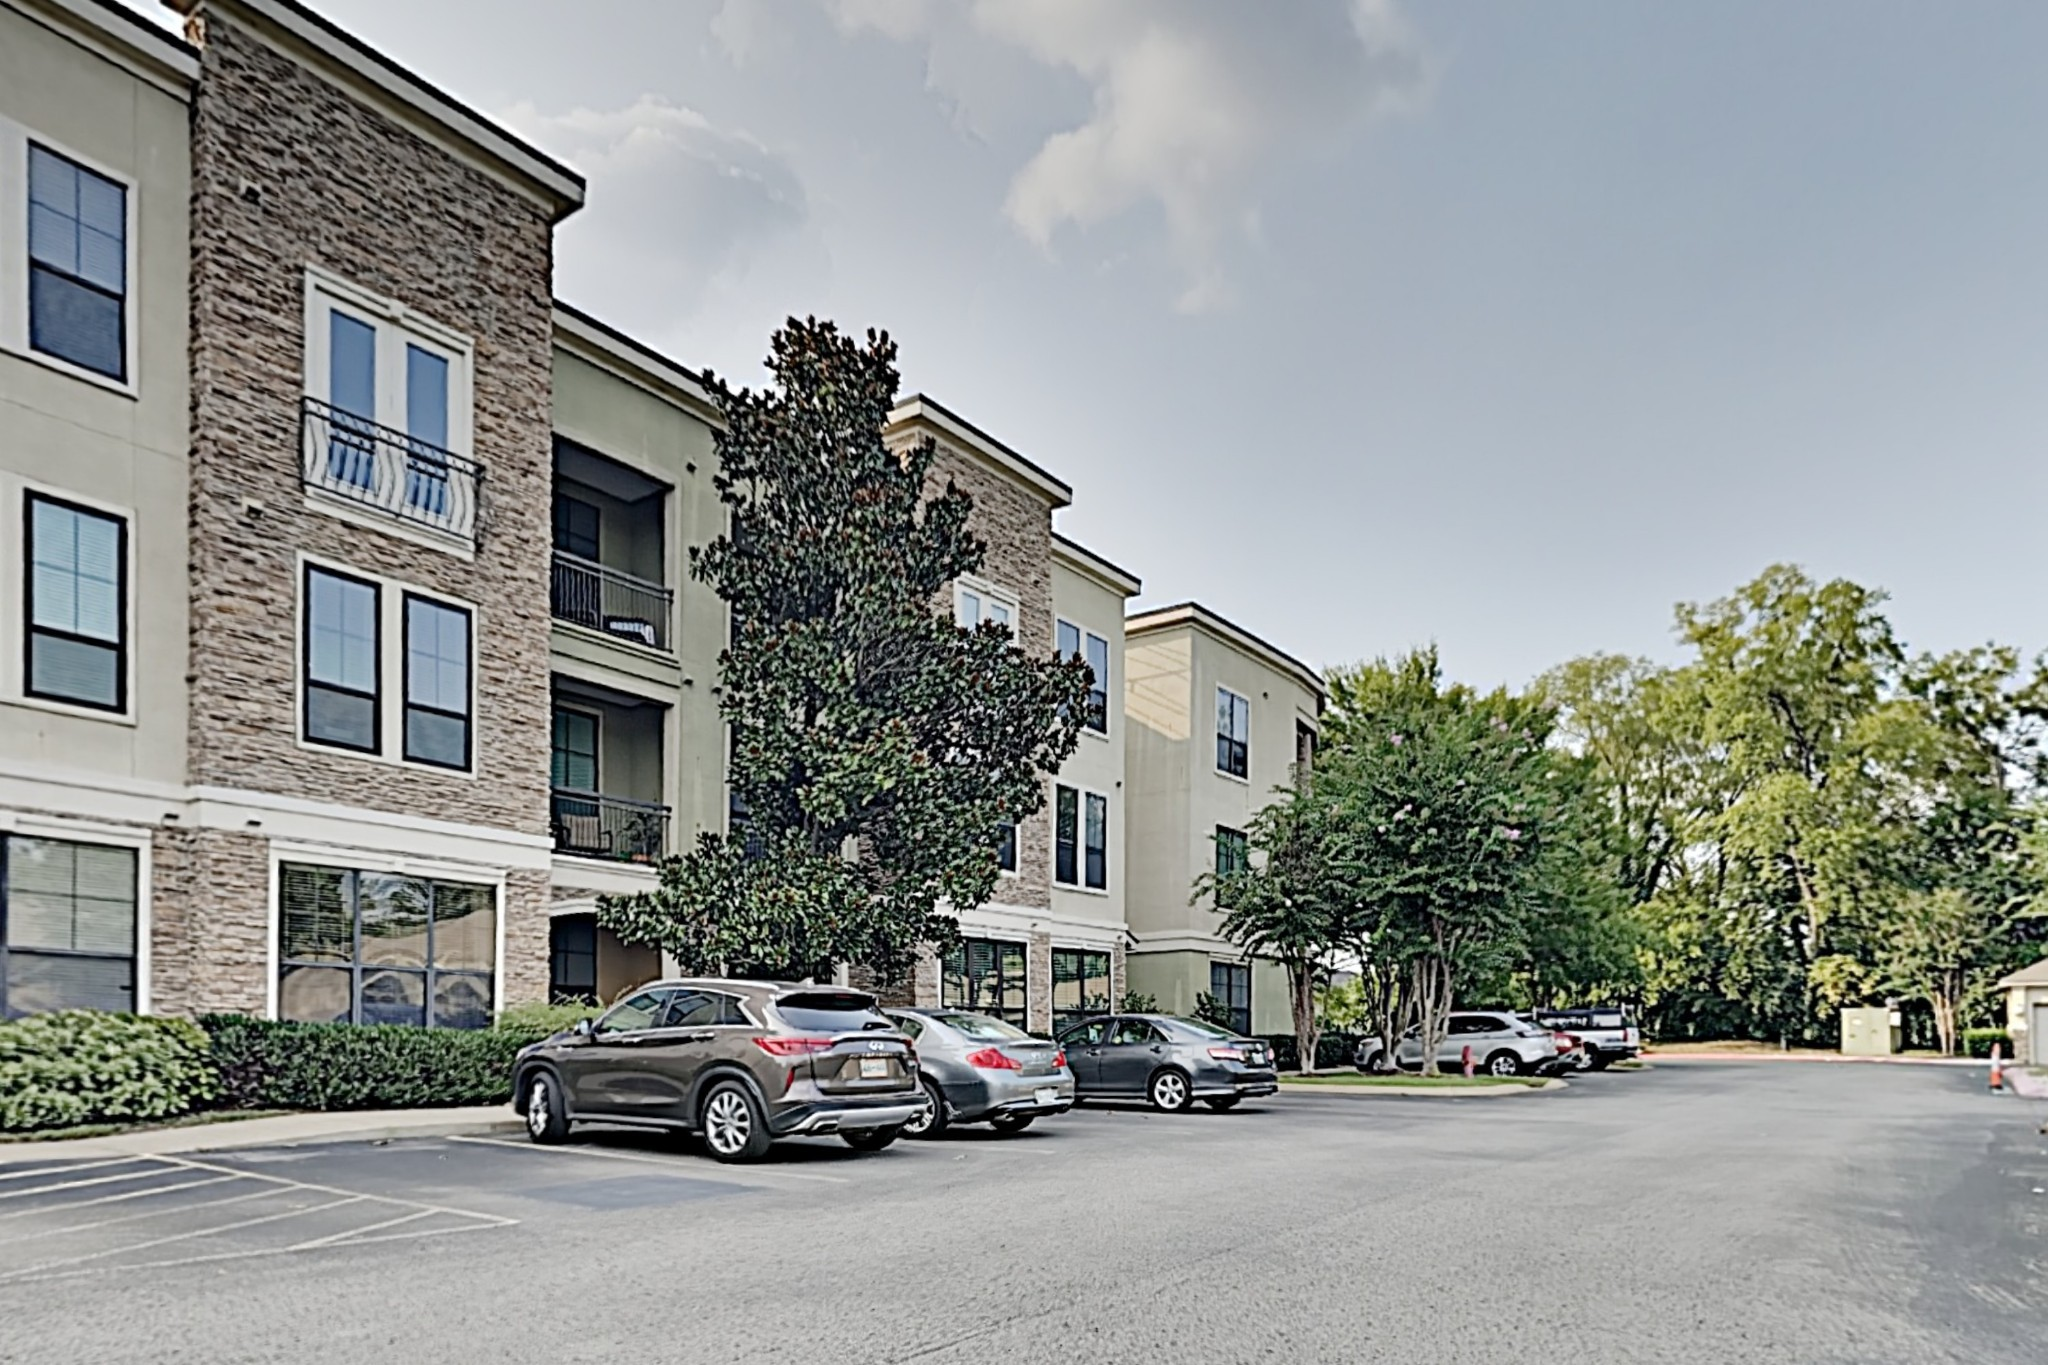 Gorgeous 2 bed, 2 bath condo unit in Enclave community at Hillsboro and I-440! Updates throughout including SS appliances, granite counters & built-in wine cooler in kitchen. Soaring 12-ft ceilings, formal dining/living areas, 6'x5' nook with built-in desk space, & large bedrooms w/ ample closet space! Includes 2 parking passes & 1 garage parking spot. The Enclave amenities include clubhouse, fitness center, community grills, coffee/work areas, private event space. Showings By Appointment Only